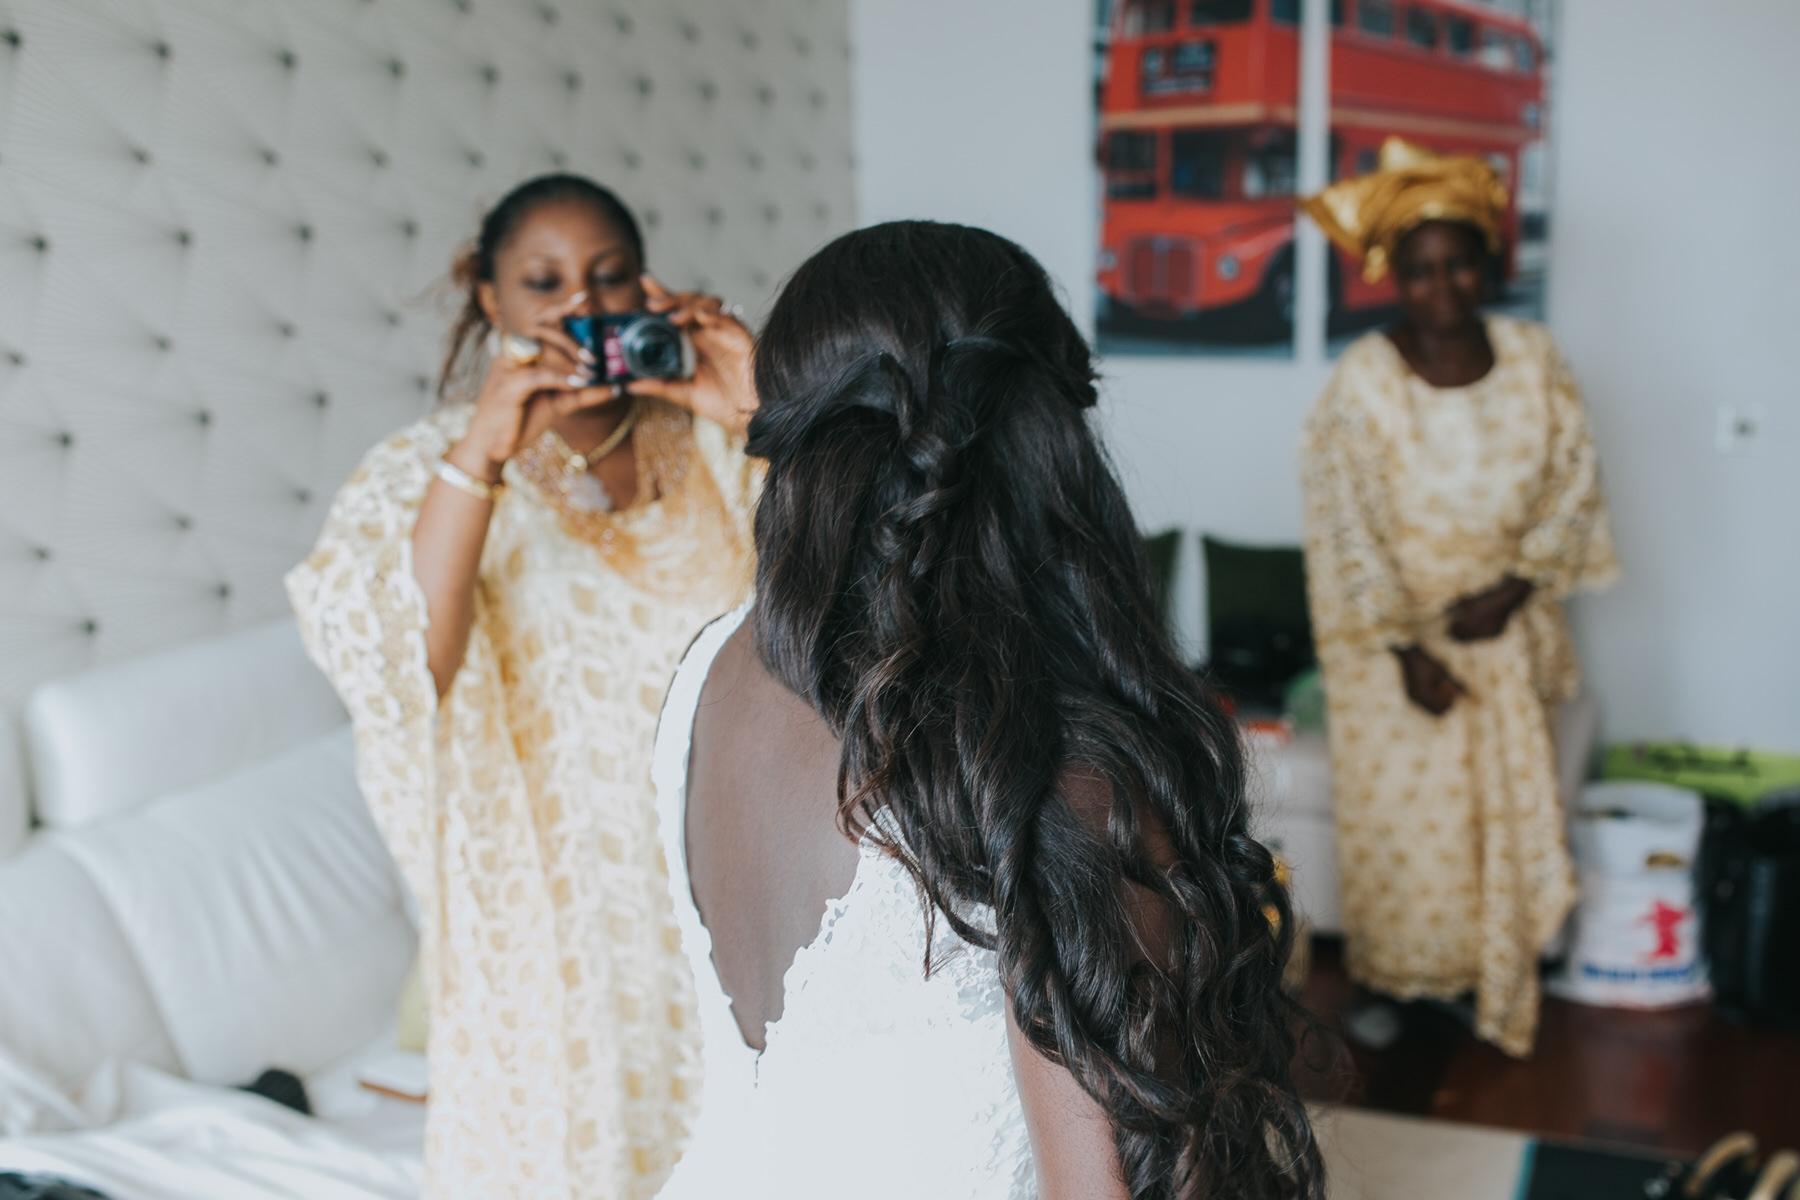 44-bridal party in traditional wedding dress taking photos of bride.jpg